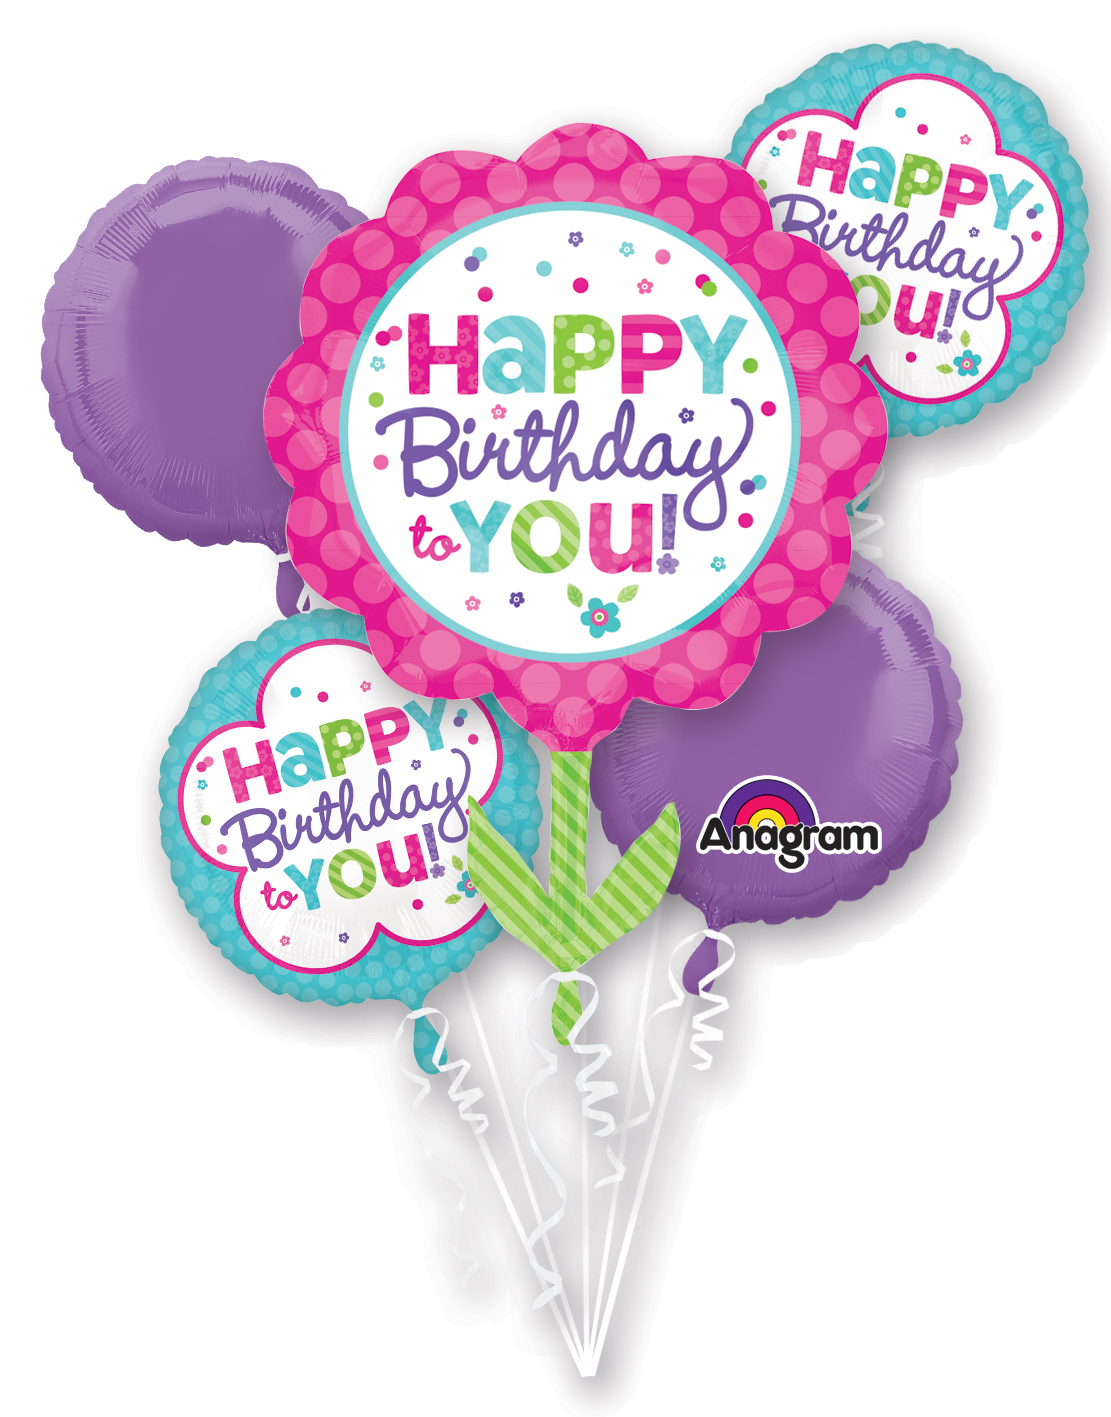 Bouquet Pink Teal Birthday Balloon Packaged